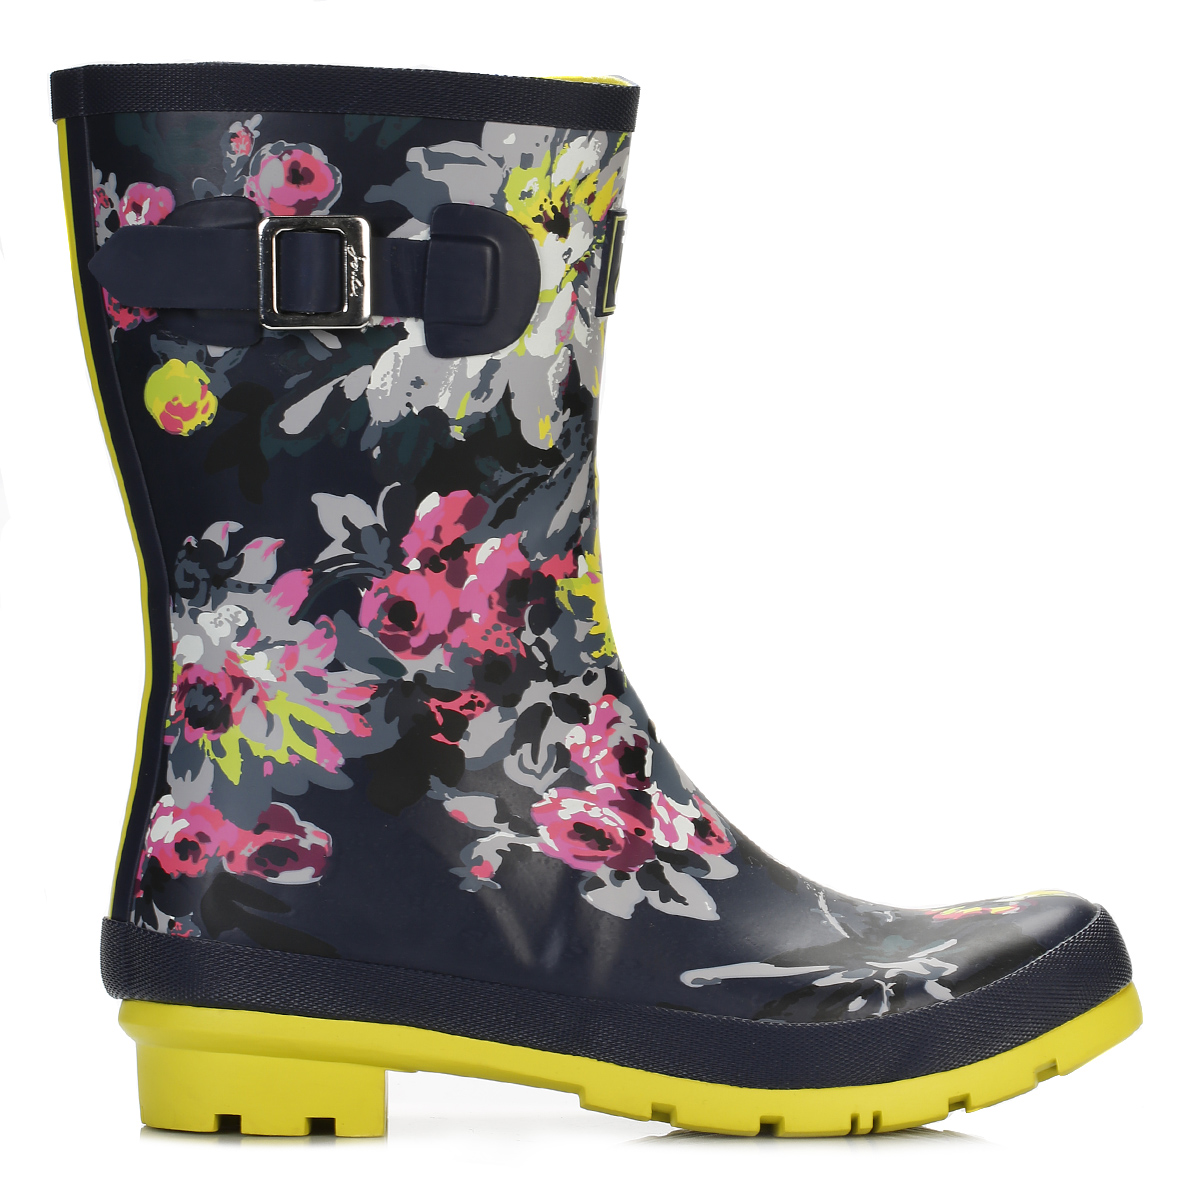 joules womens mid calf wellington boots rubber wellies